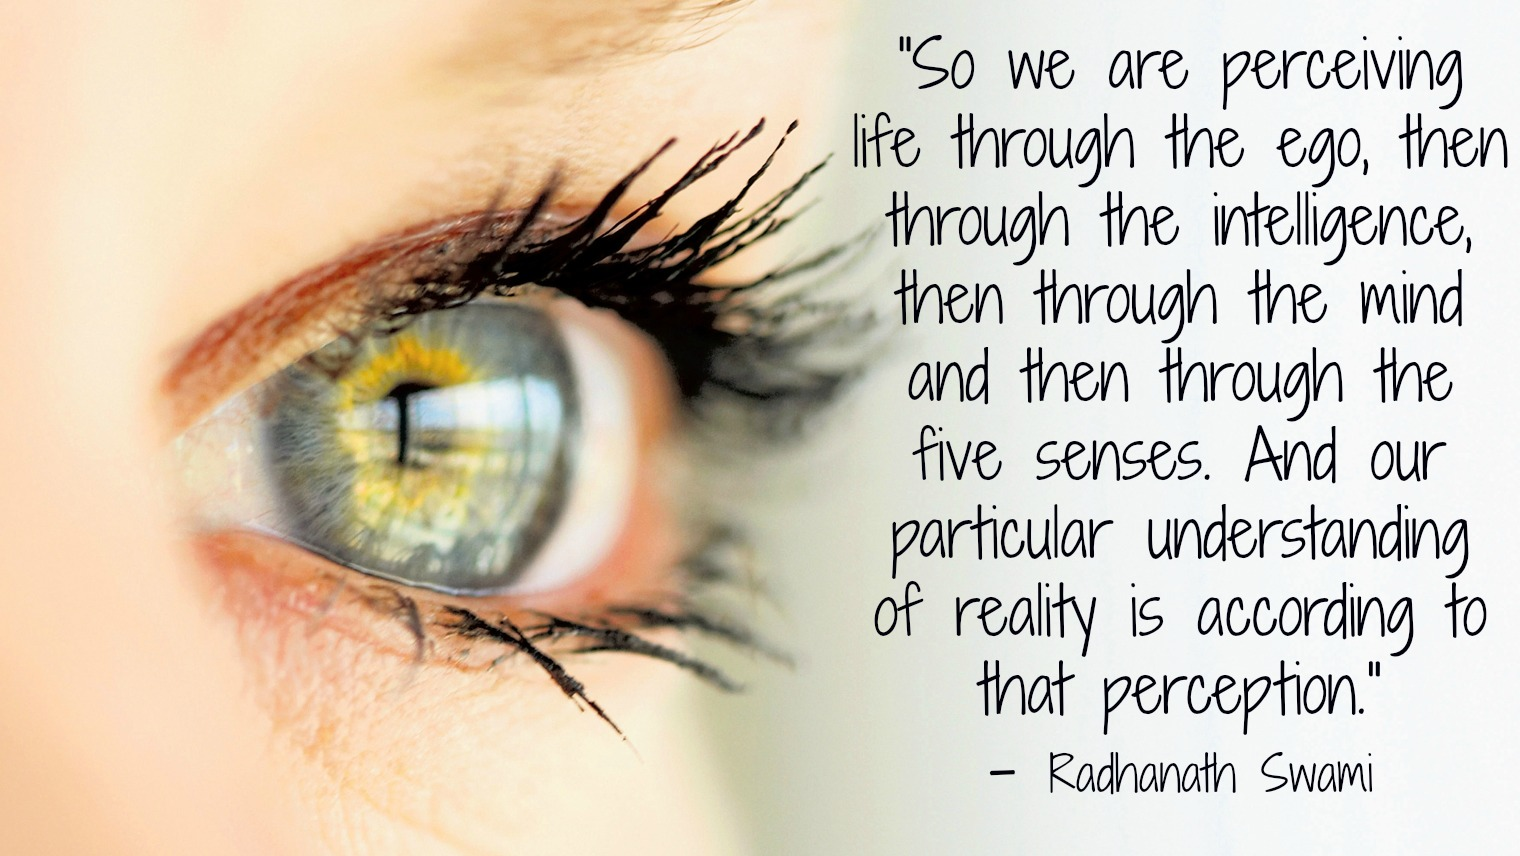 Radhanath swami on perception